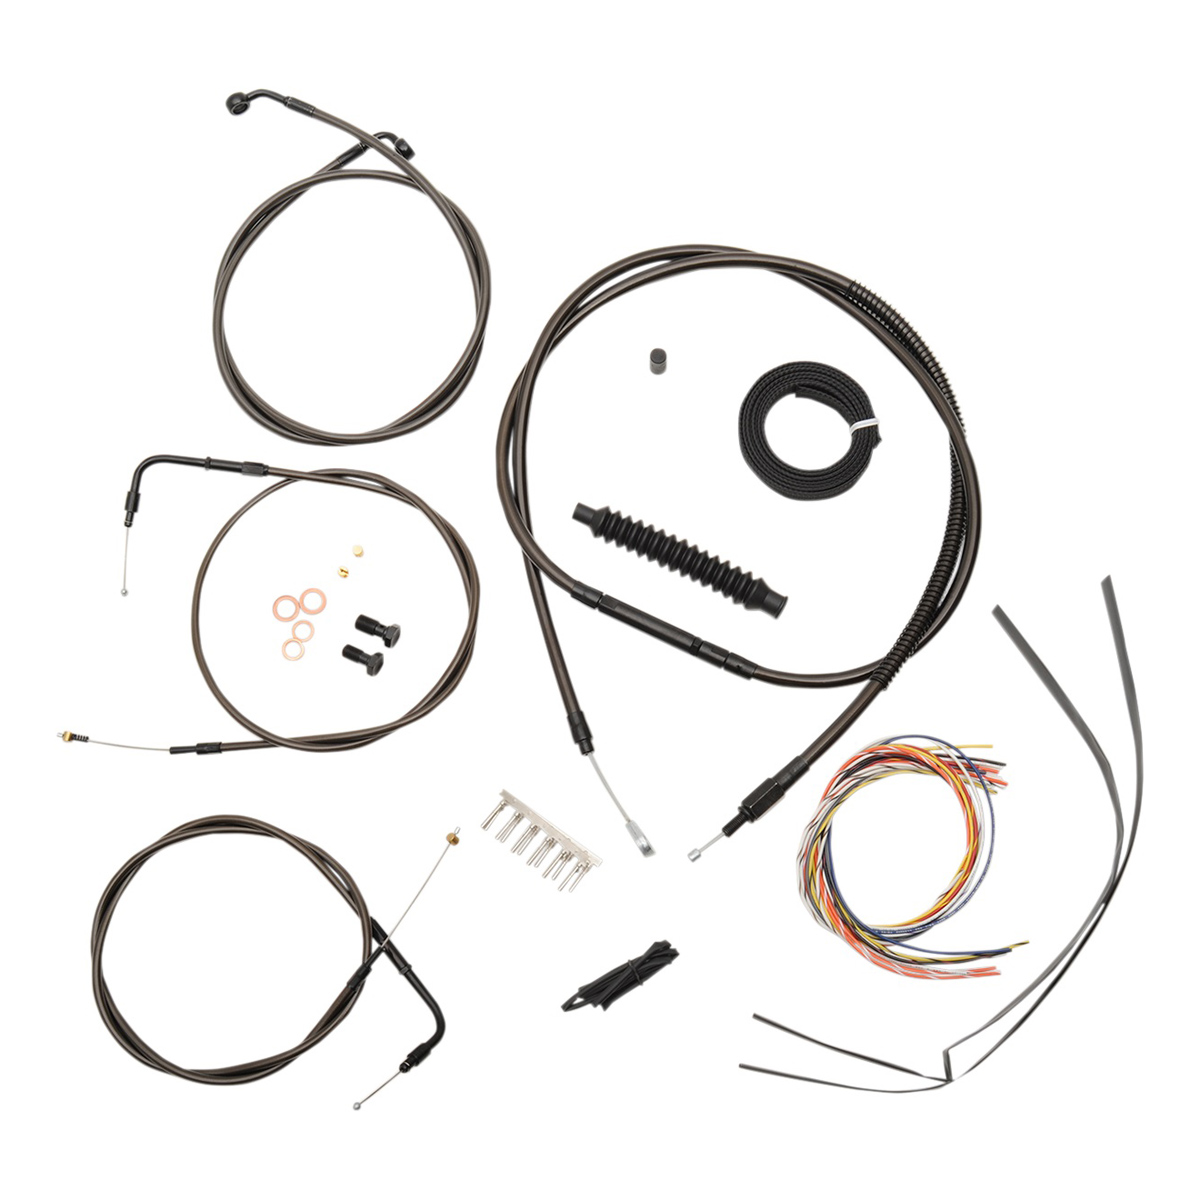 La Choppers Midnight Complete Cable Line Wiring Handlebar Kit For 18 20 Bars